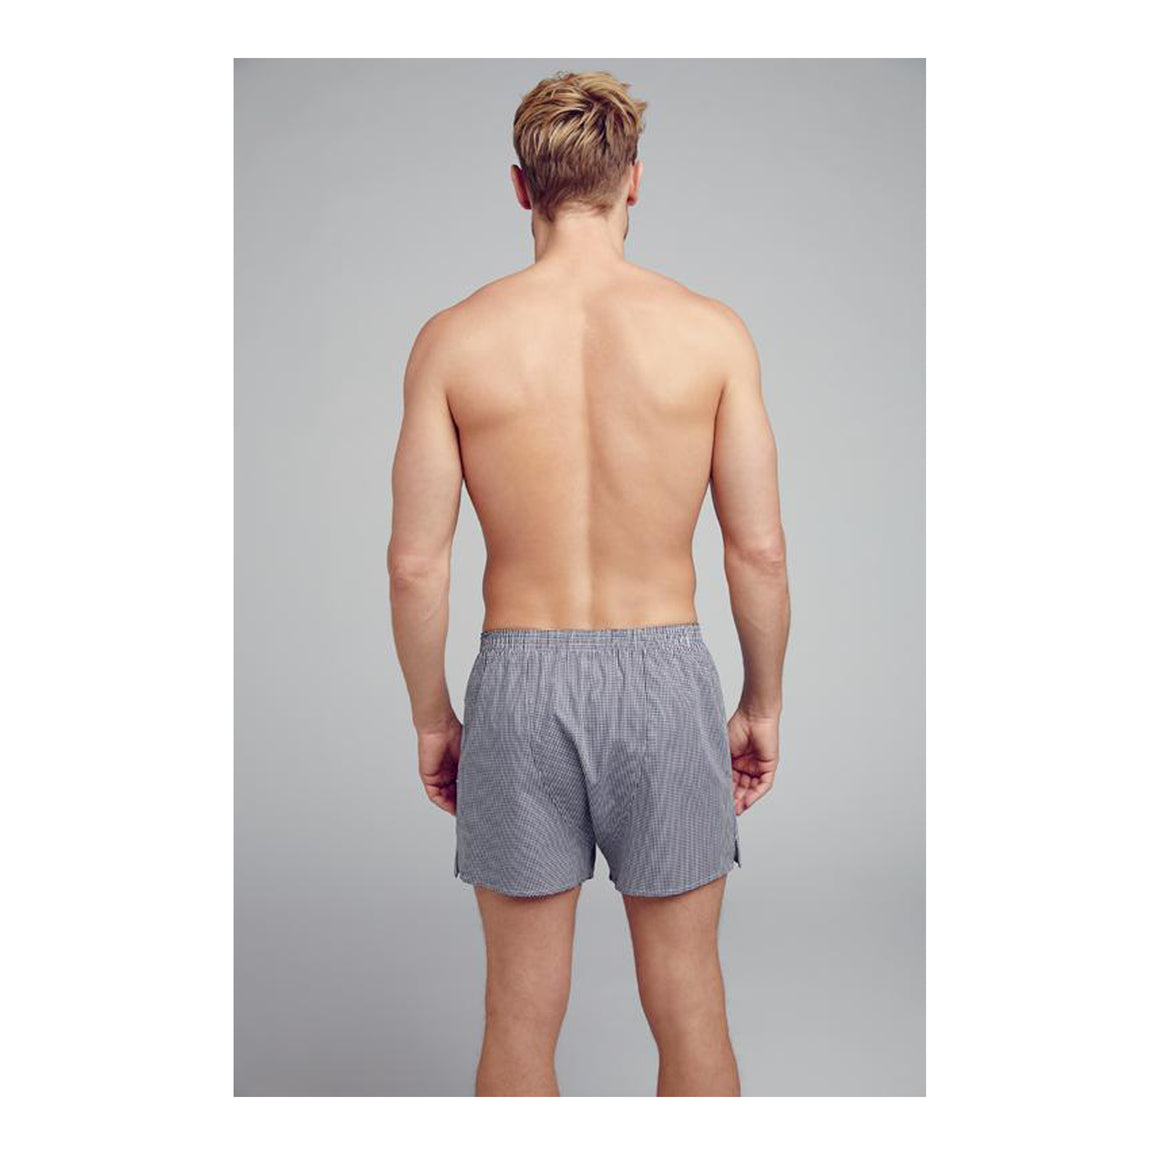 Check Woven Single Boxer Short for Men in Navy